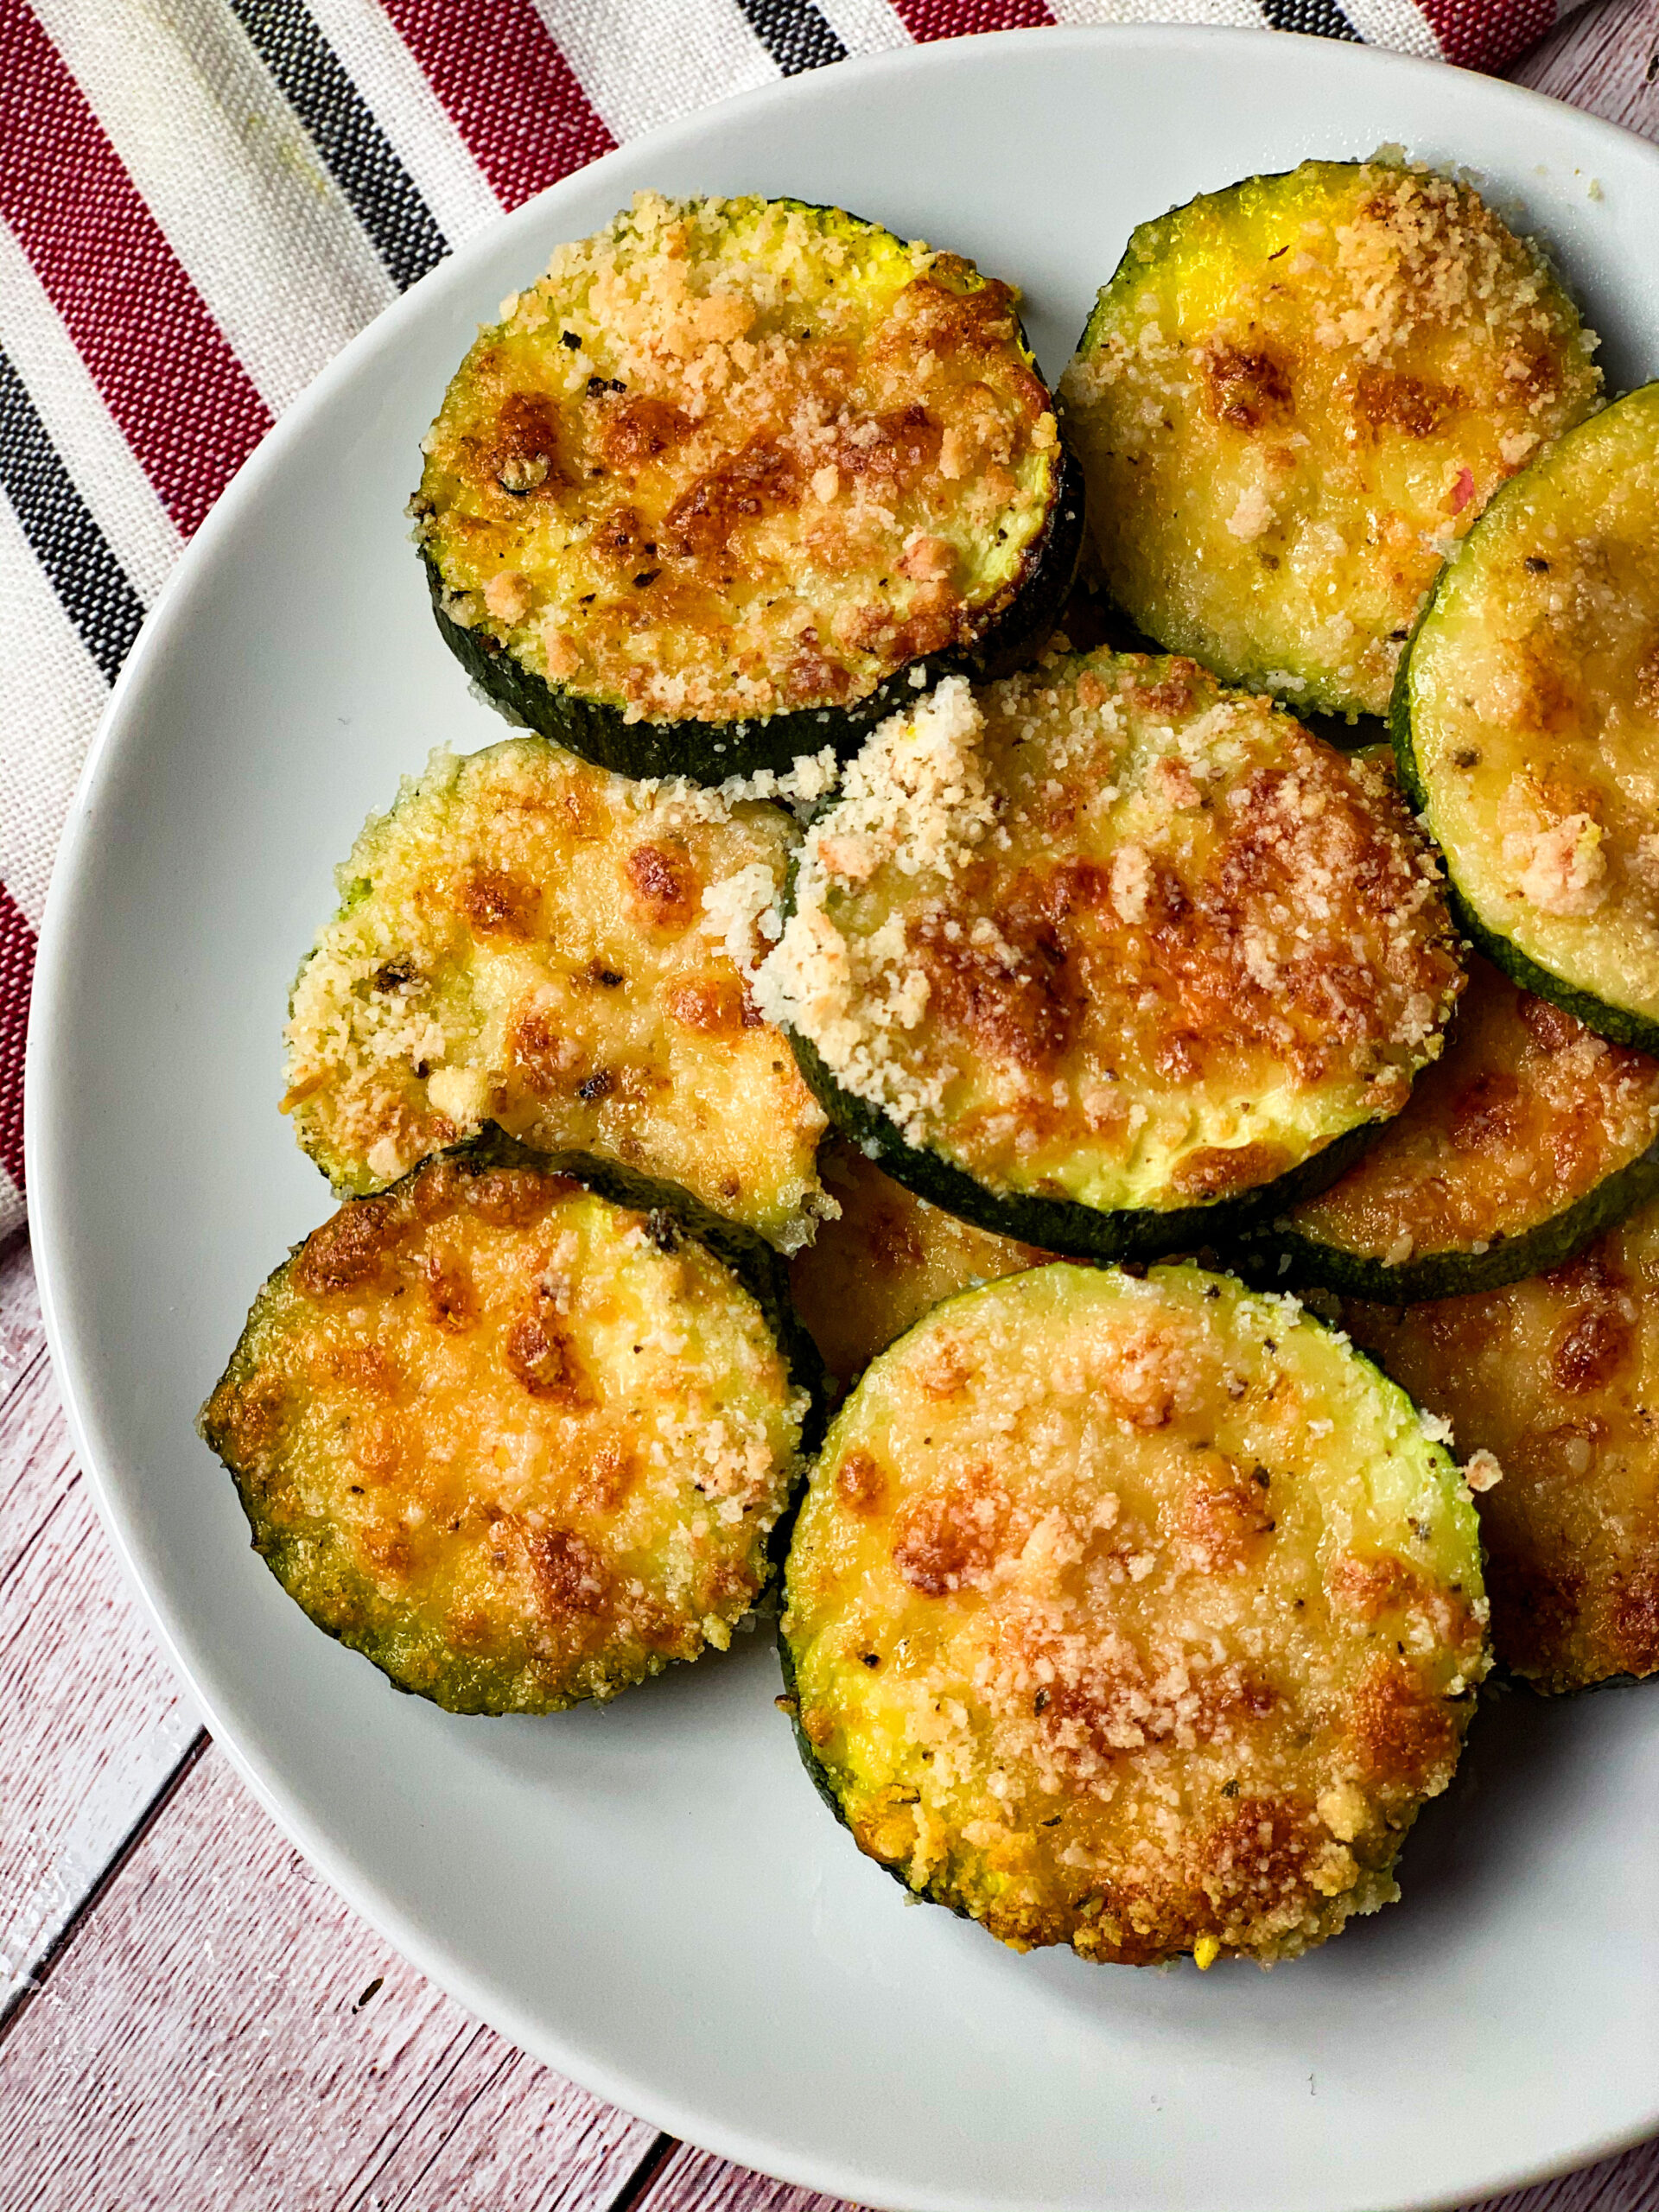 Picture of low carb baked zucchini with cheese crunchy topping